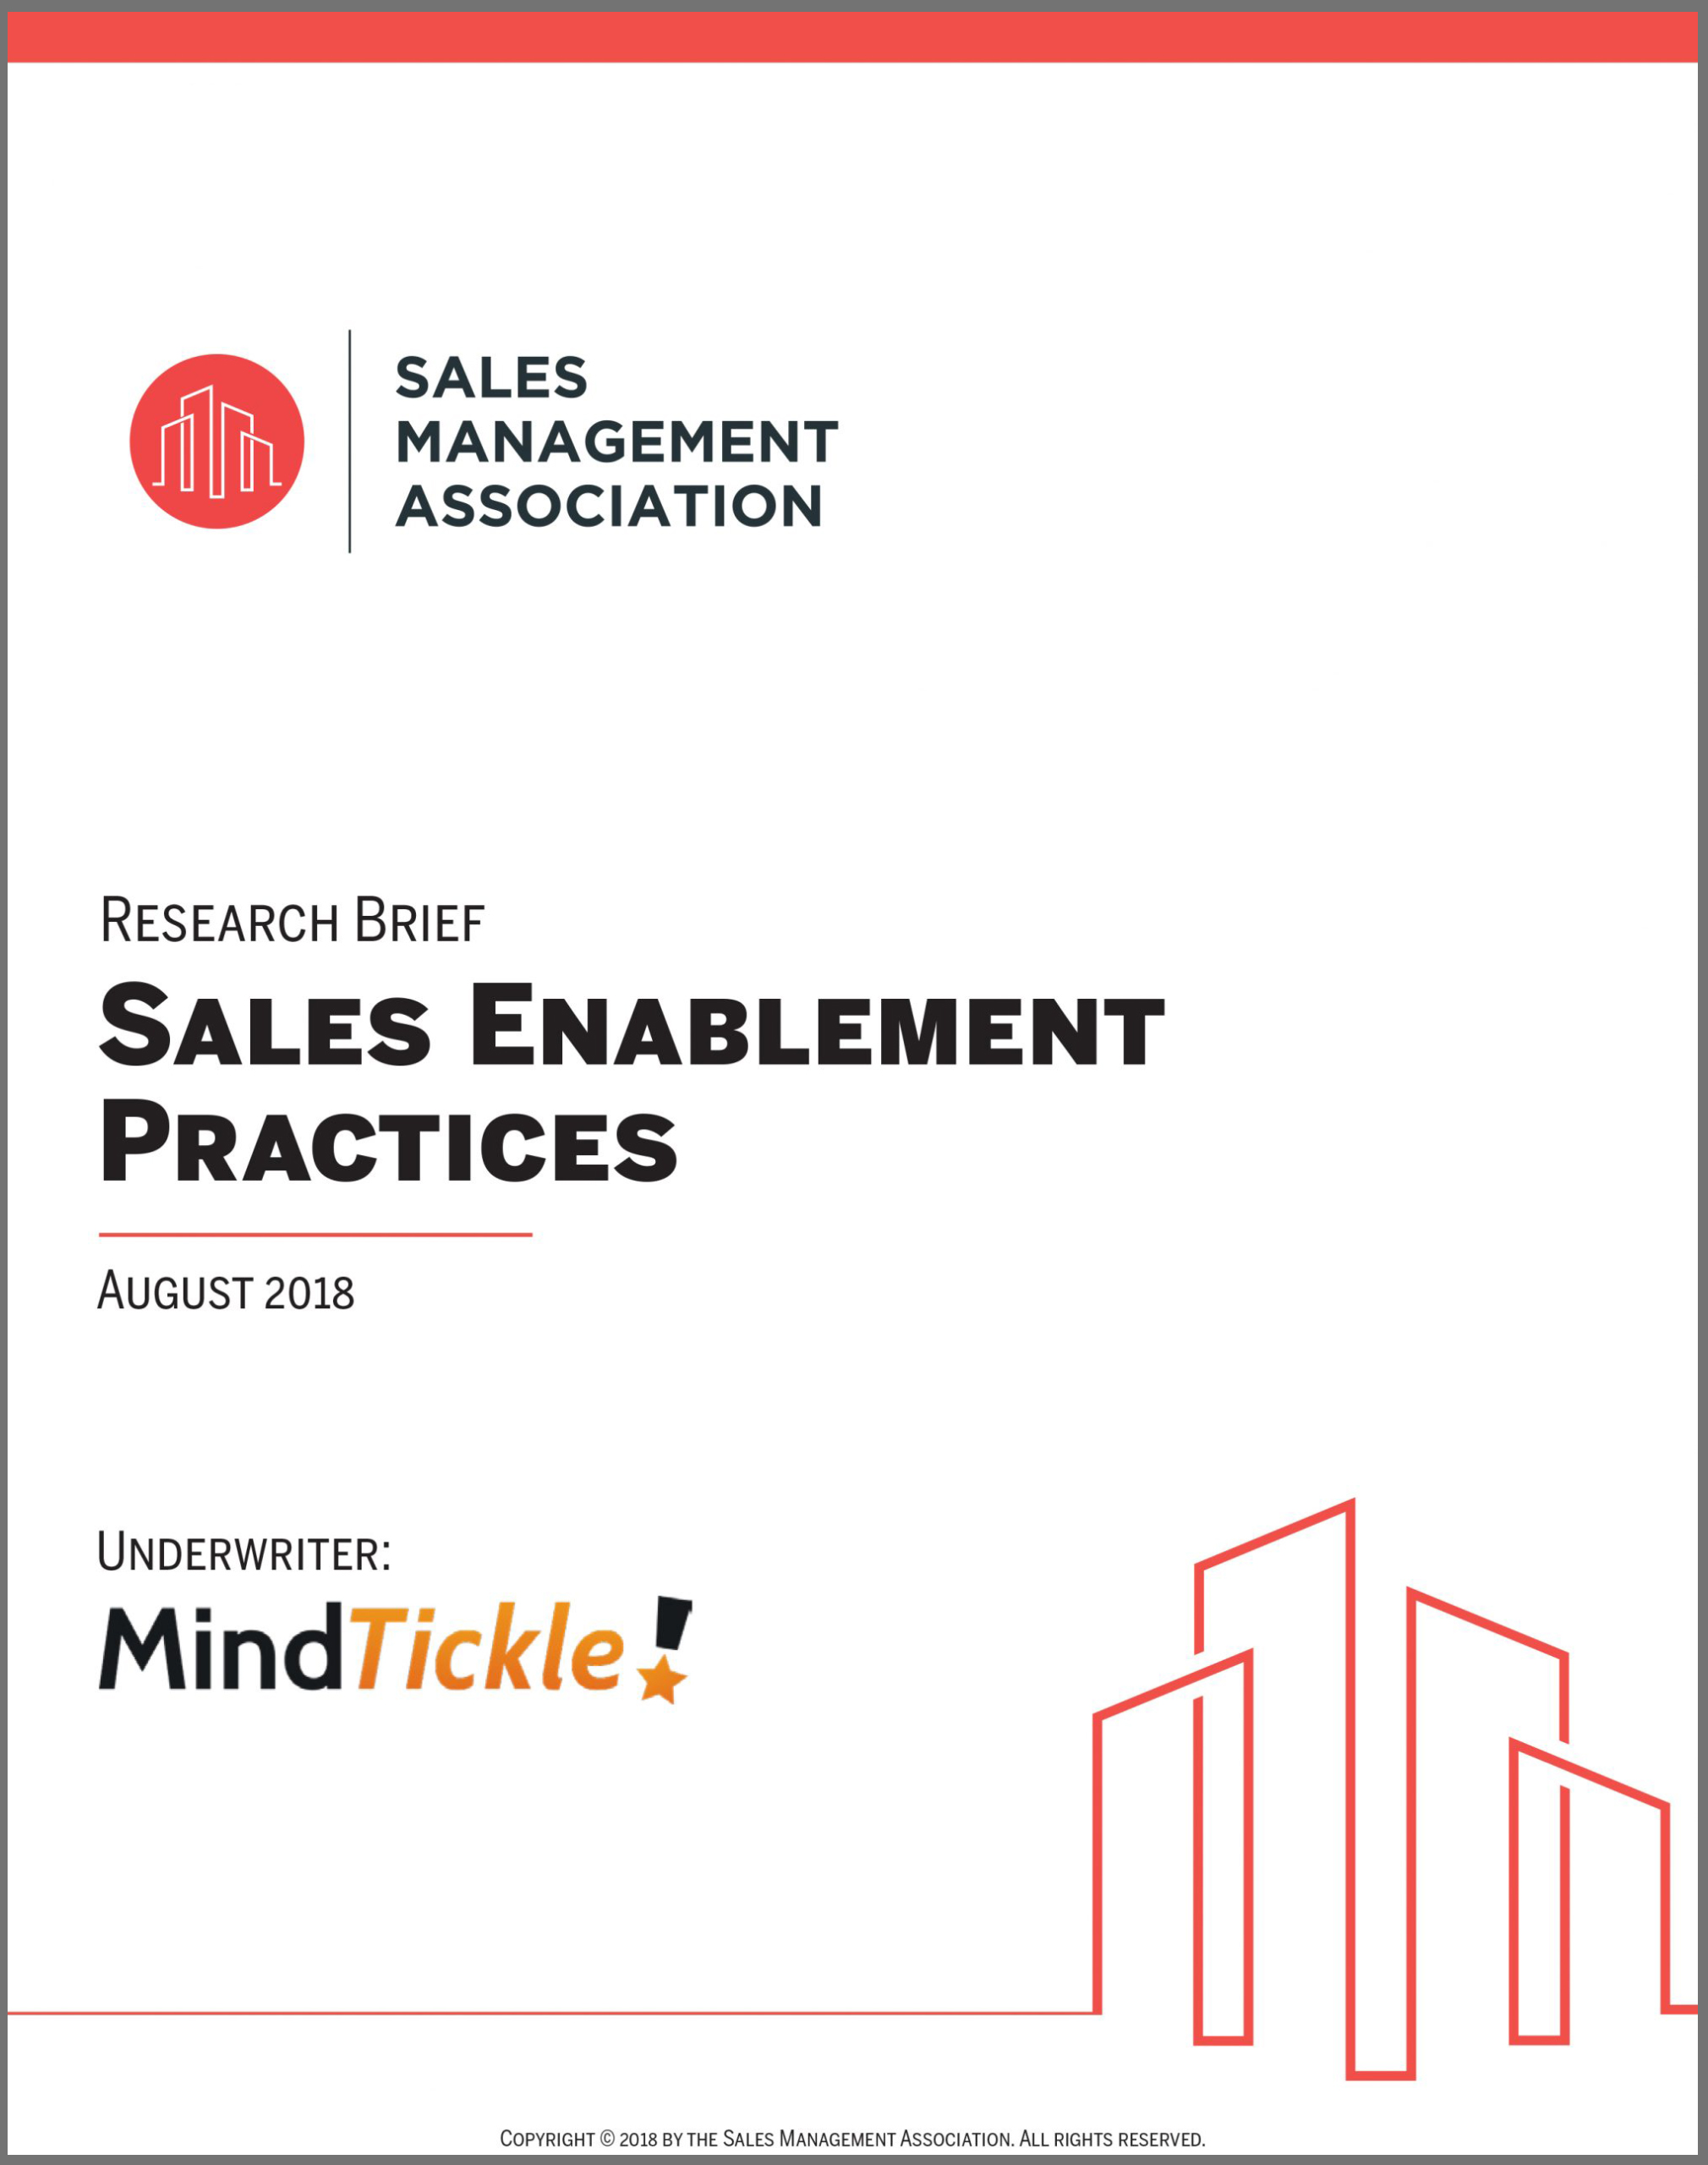 Sales Enablement Best Practices